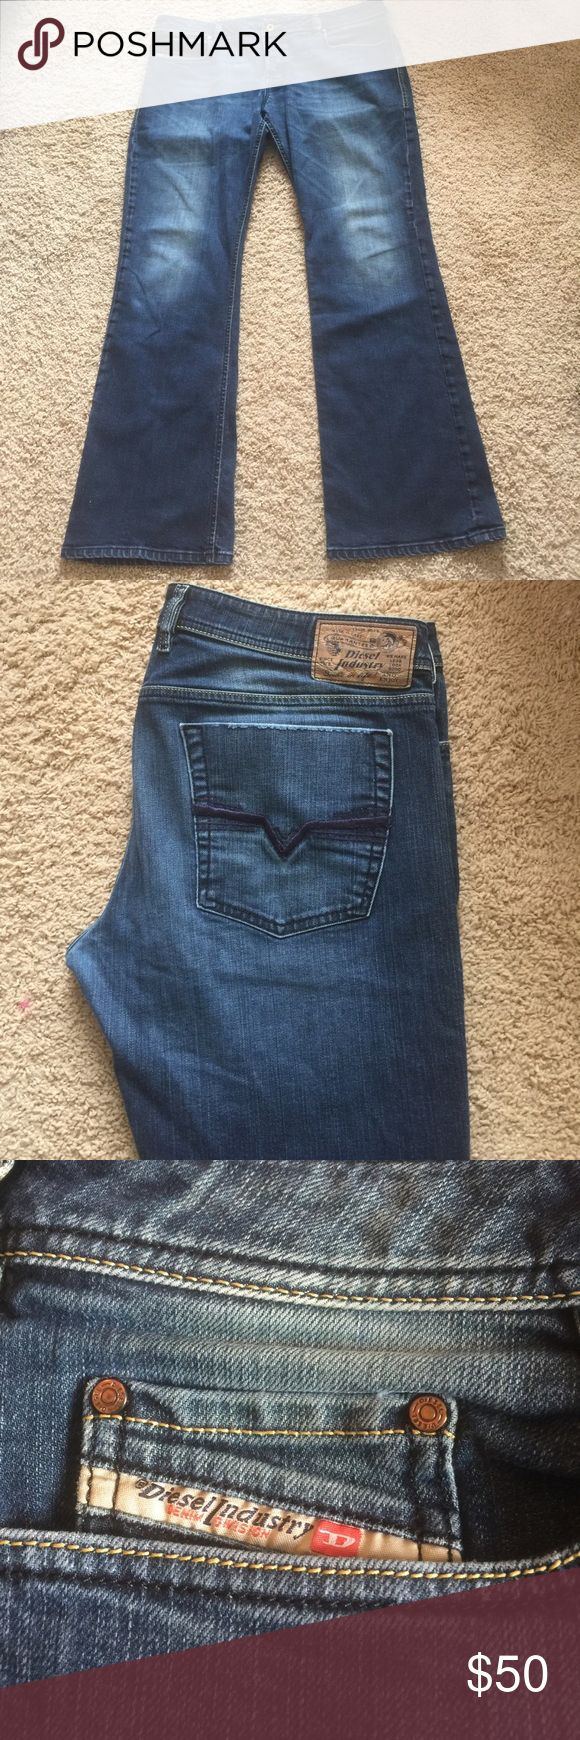 Zathan Deisel jeans In excellent condition Diesel Jeans Bootcut